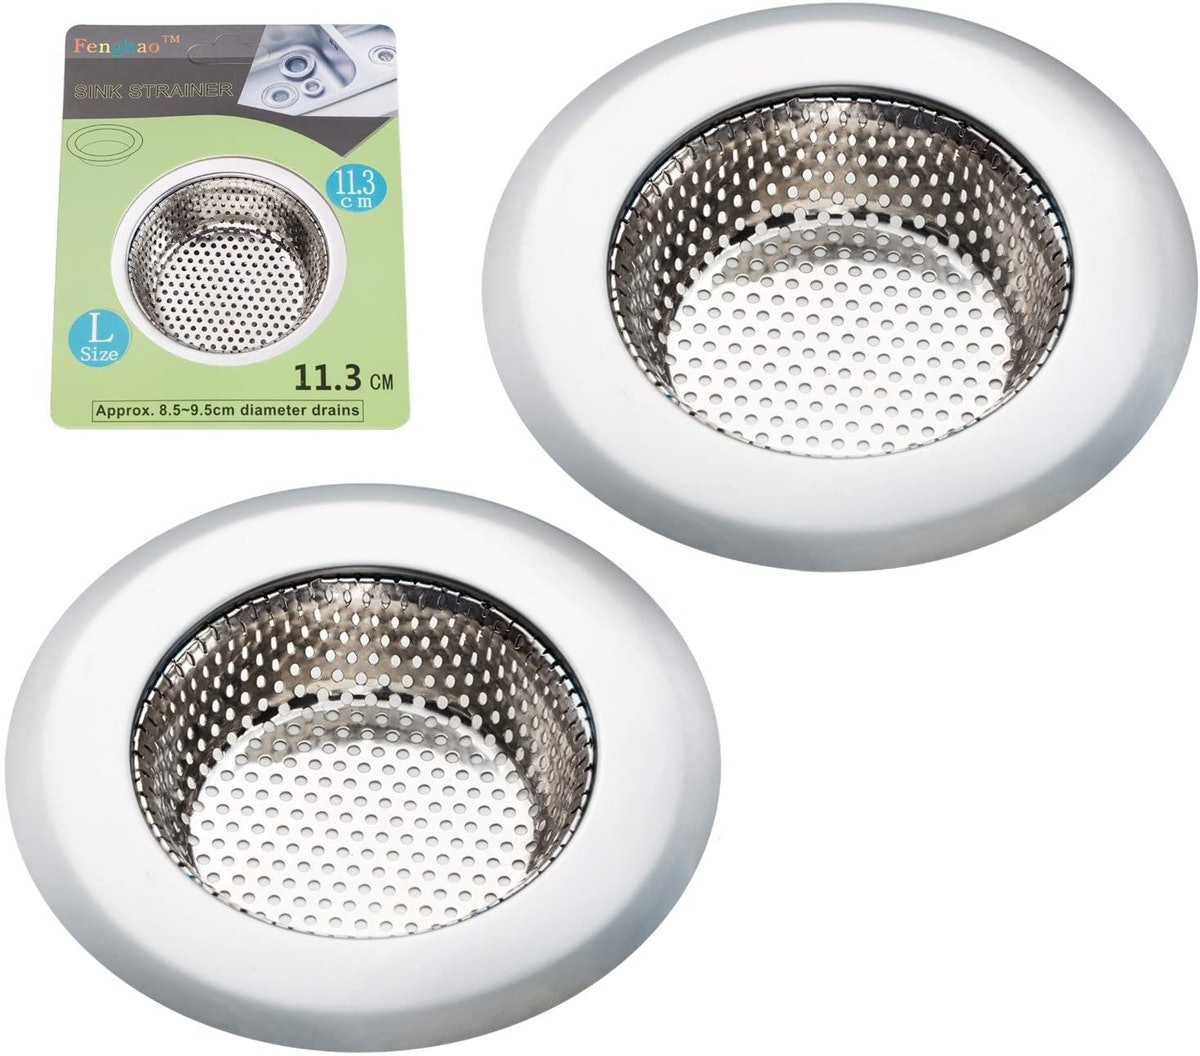 Fengbao Kitchen Sink Strainers (Set of 2)